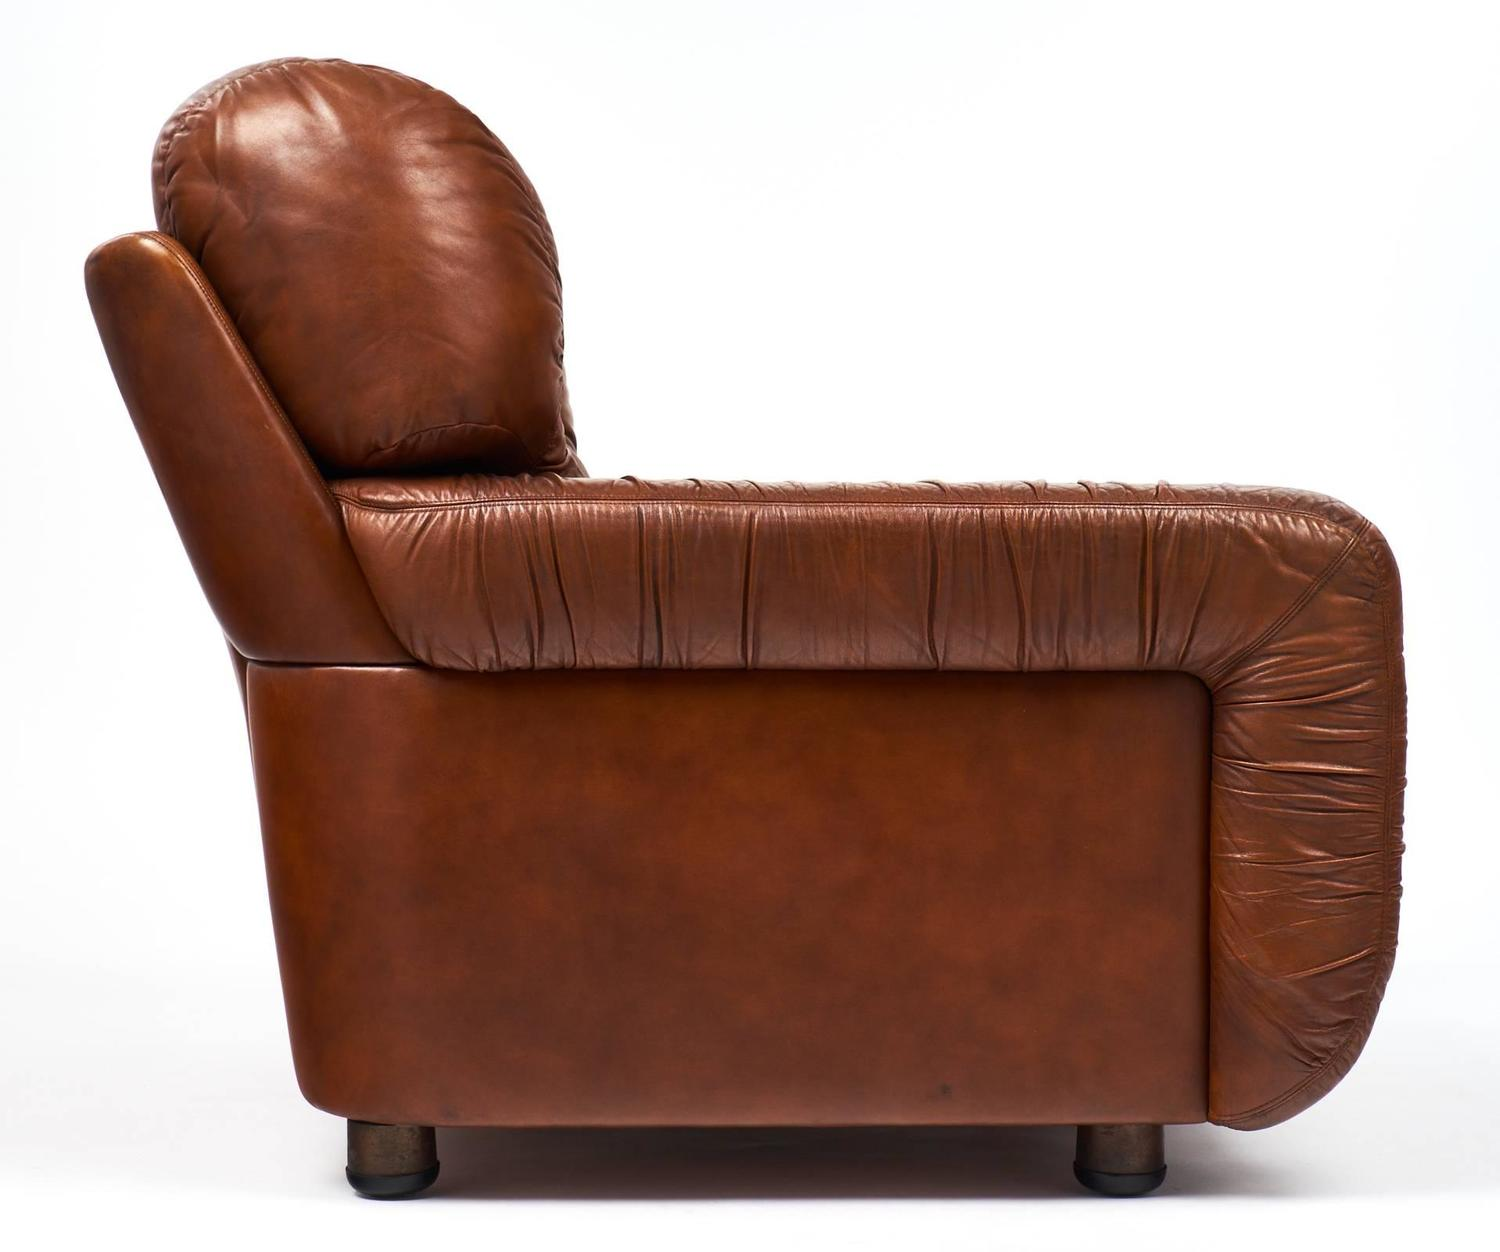 french club chairs for sale bailey chair building instructions vintage overstuffed leather at